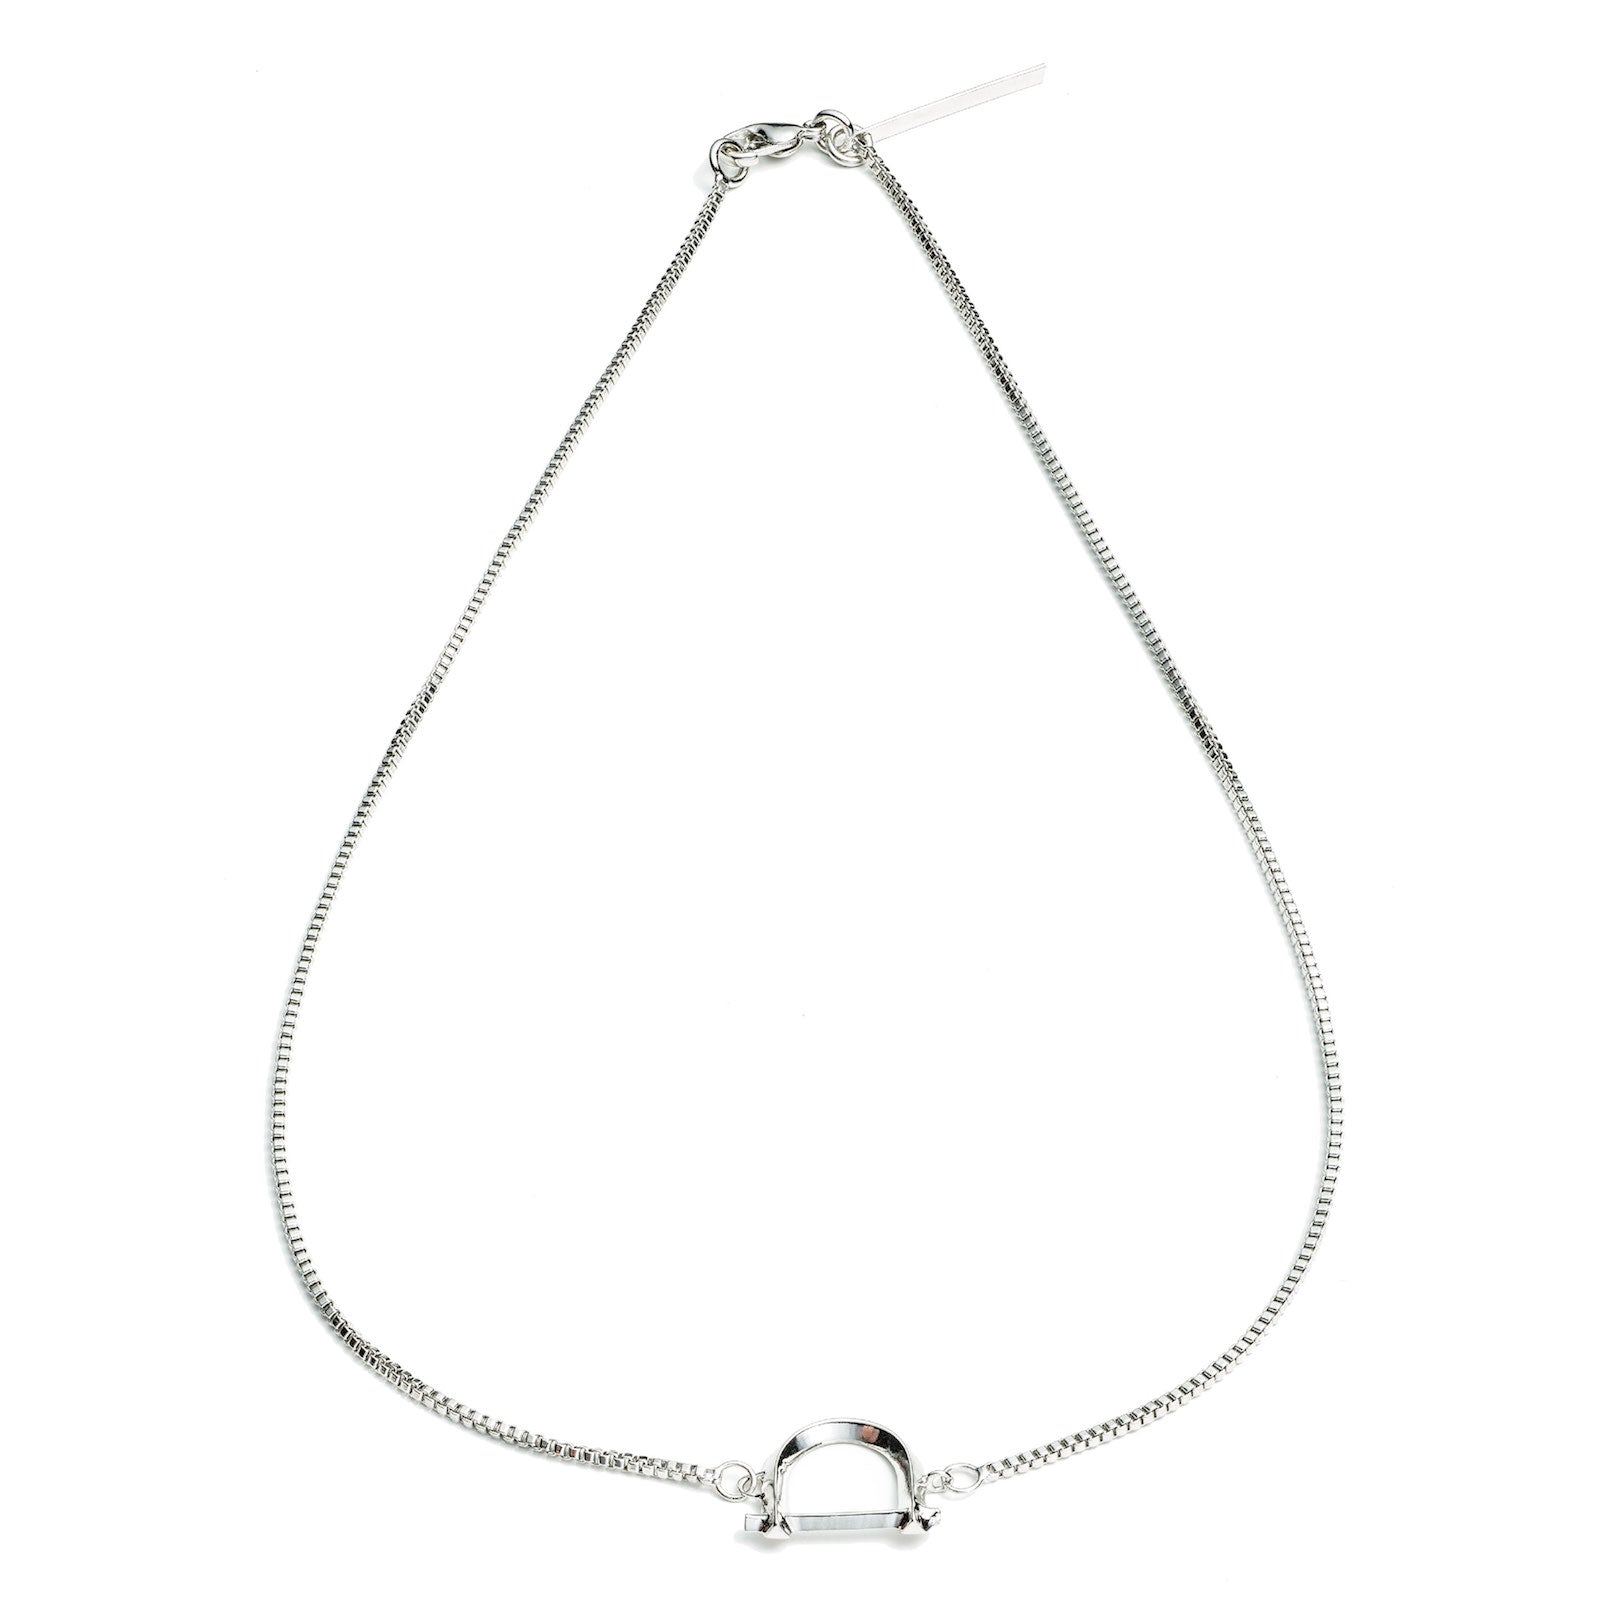 ARC NECKLACE - SILVER PLATED BRASS